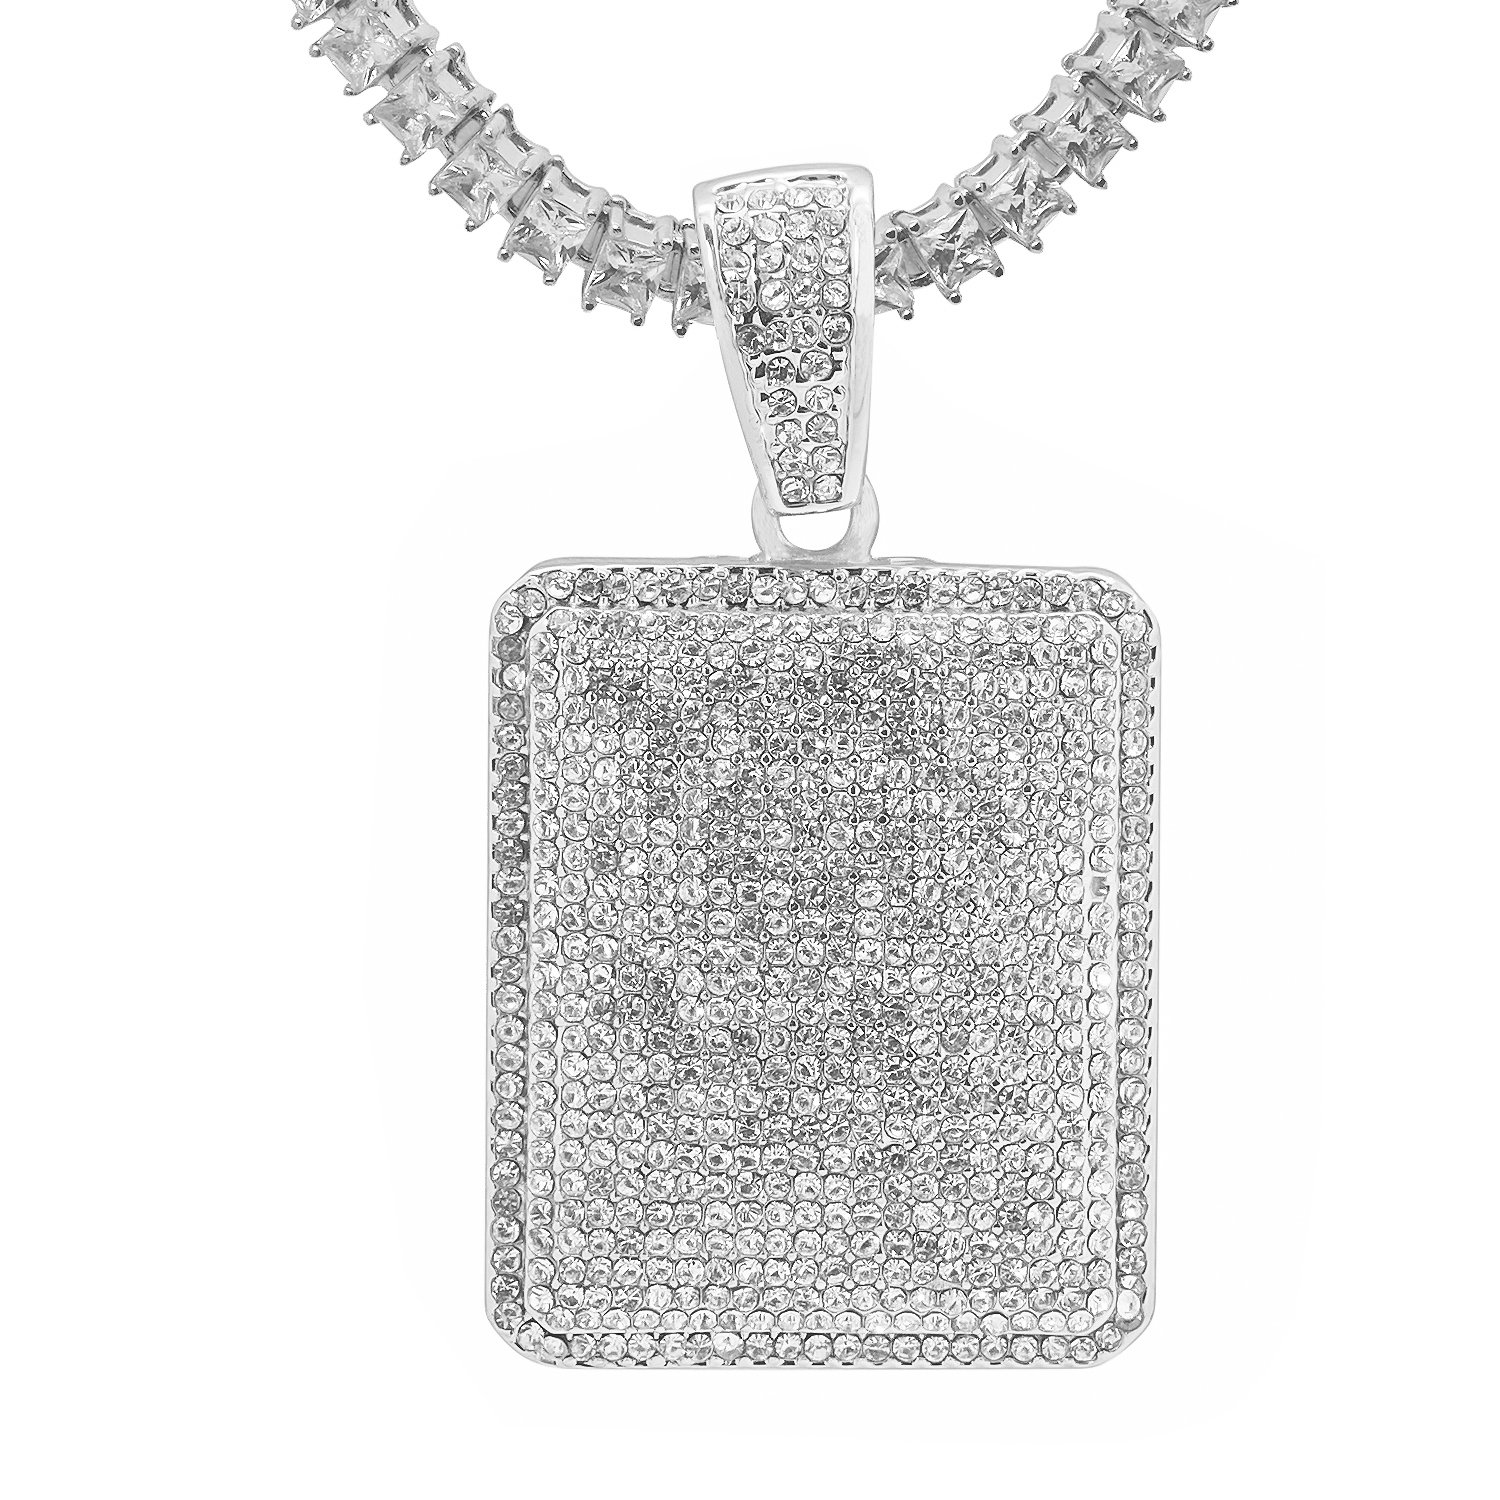 White Gold-Tone Iced Out Hip Hop Bling Rectangle Dog Tag Pendant 1 Row Square Cubic Zirconia Princess Cut Stones Tennis Chain 18 Necklace Choker Chain